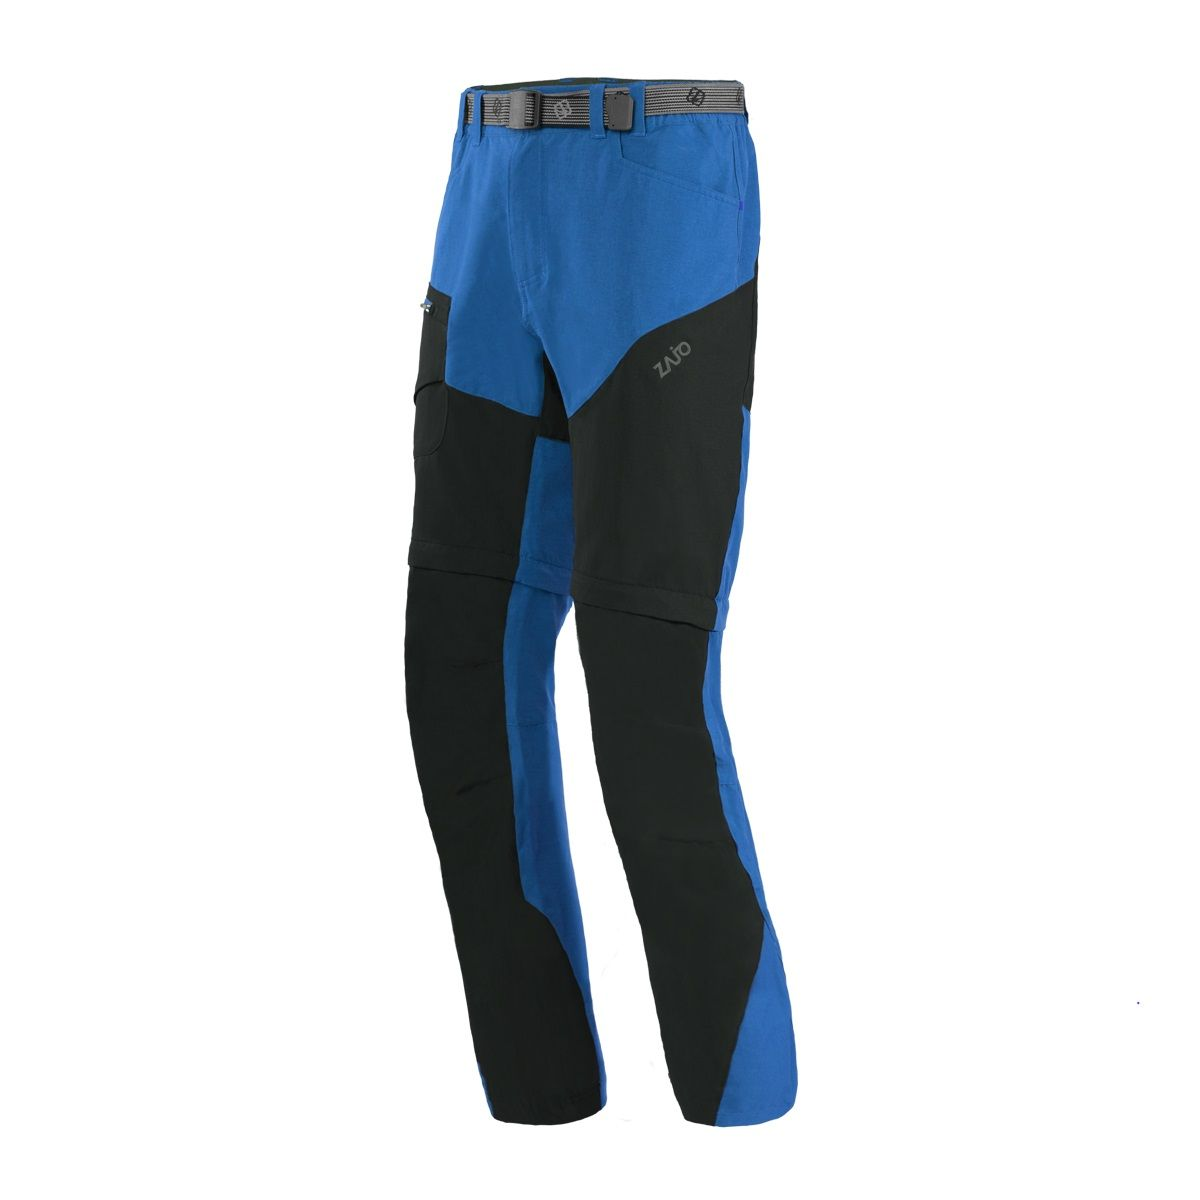 Zajo Magnet Neo Zip Off Pants blue XL